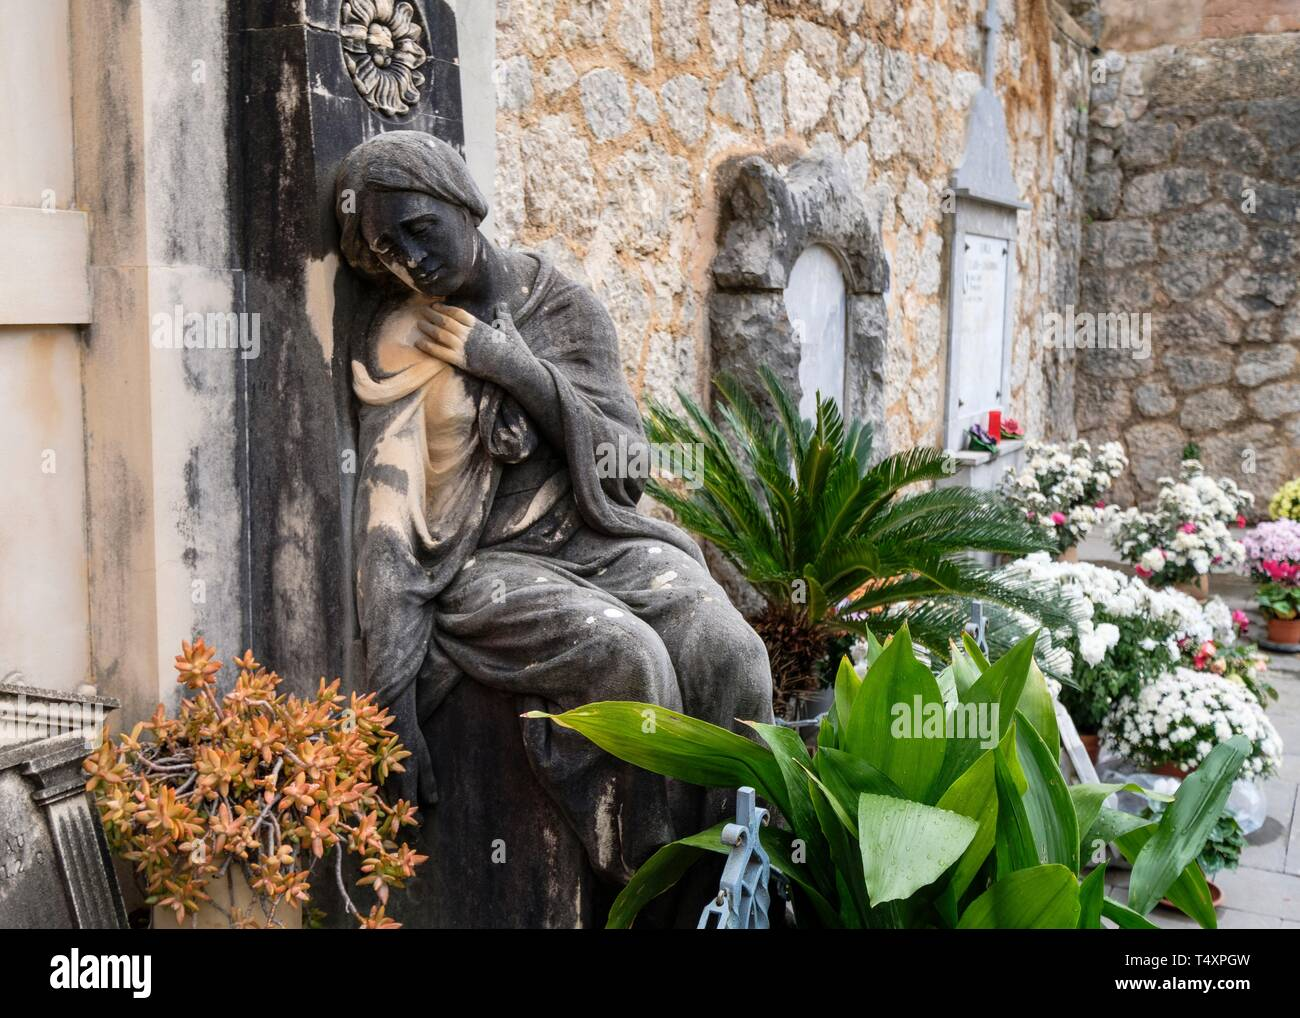 In The Year 1814 Stock Photos & In The Year 1814 Stock Images - Alamy